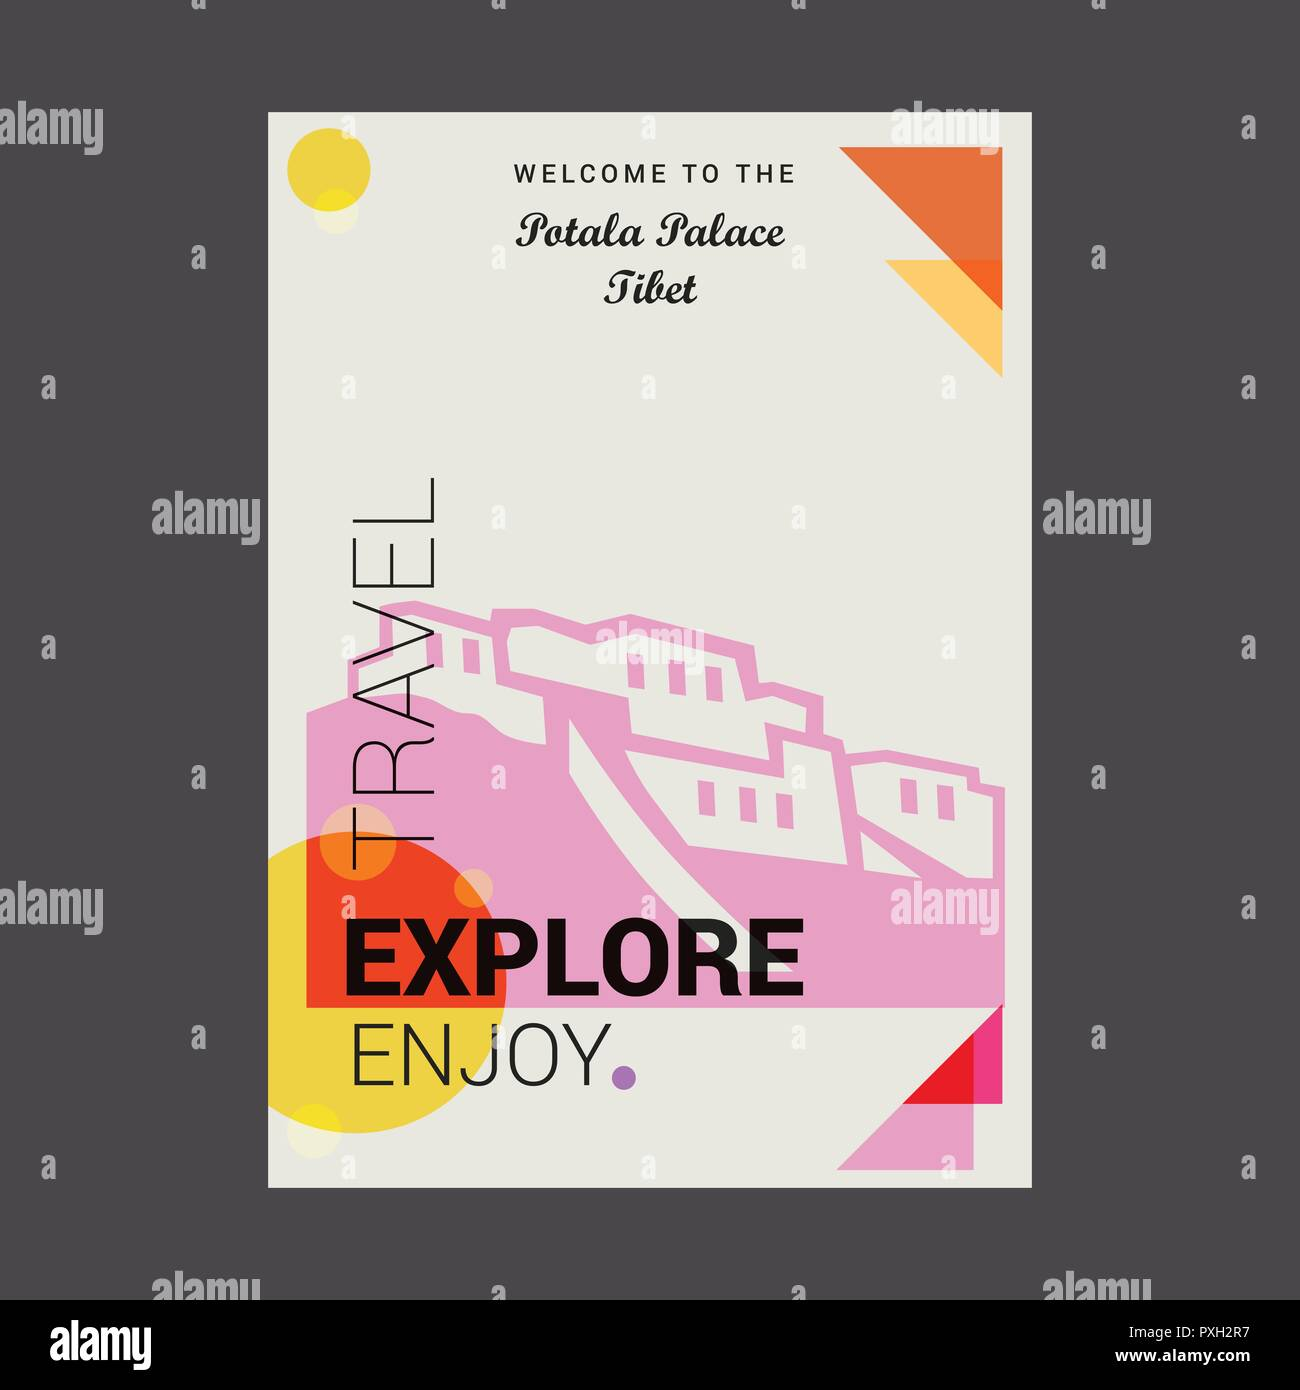 Welcome to The Potala Palace, Tibet Explore, Travel Enjoy Poster Template - Stock Vector